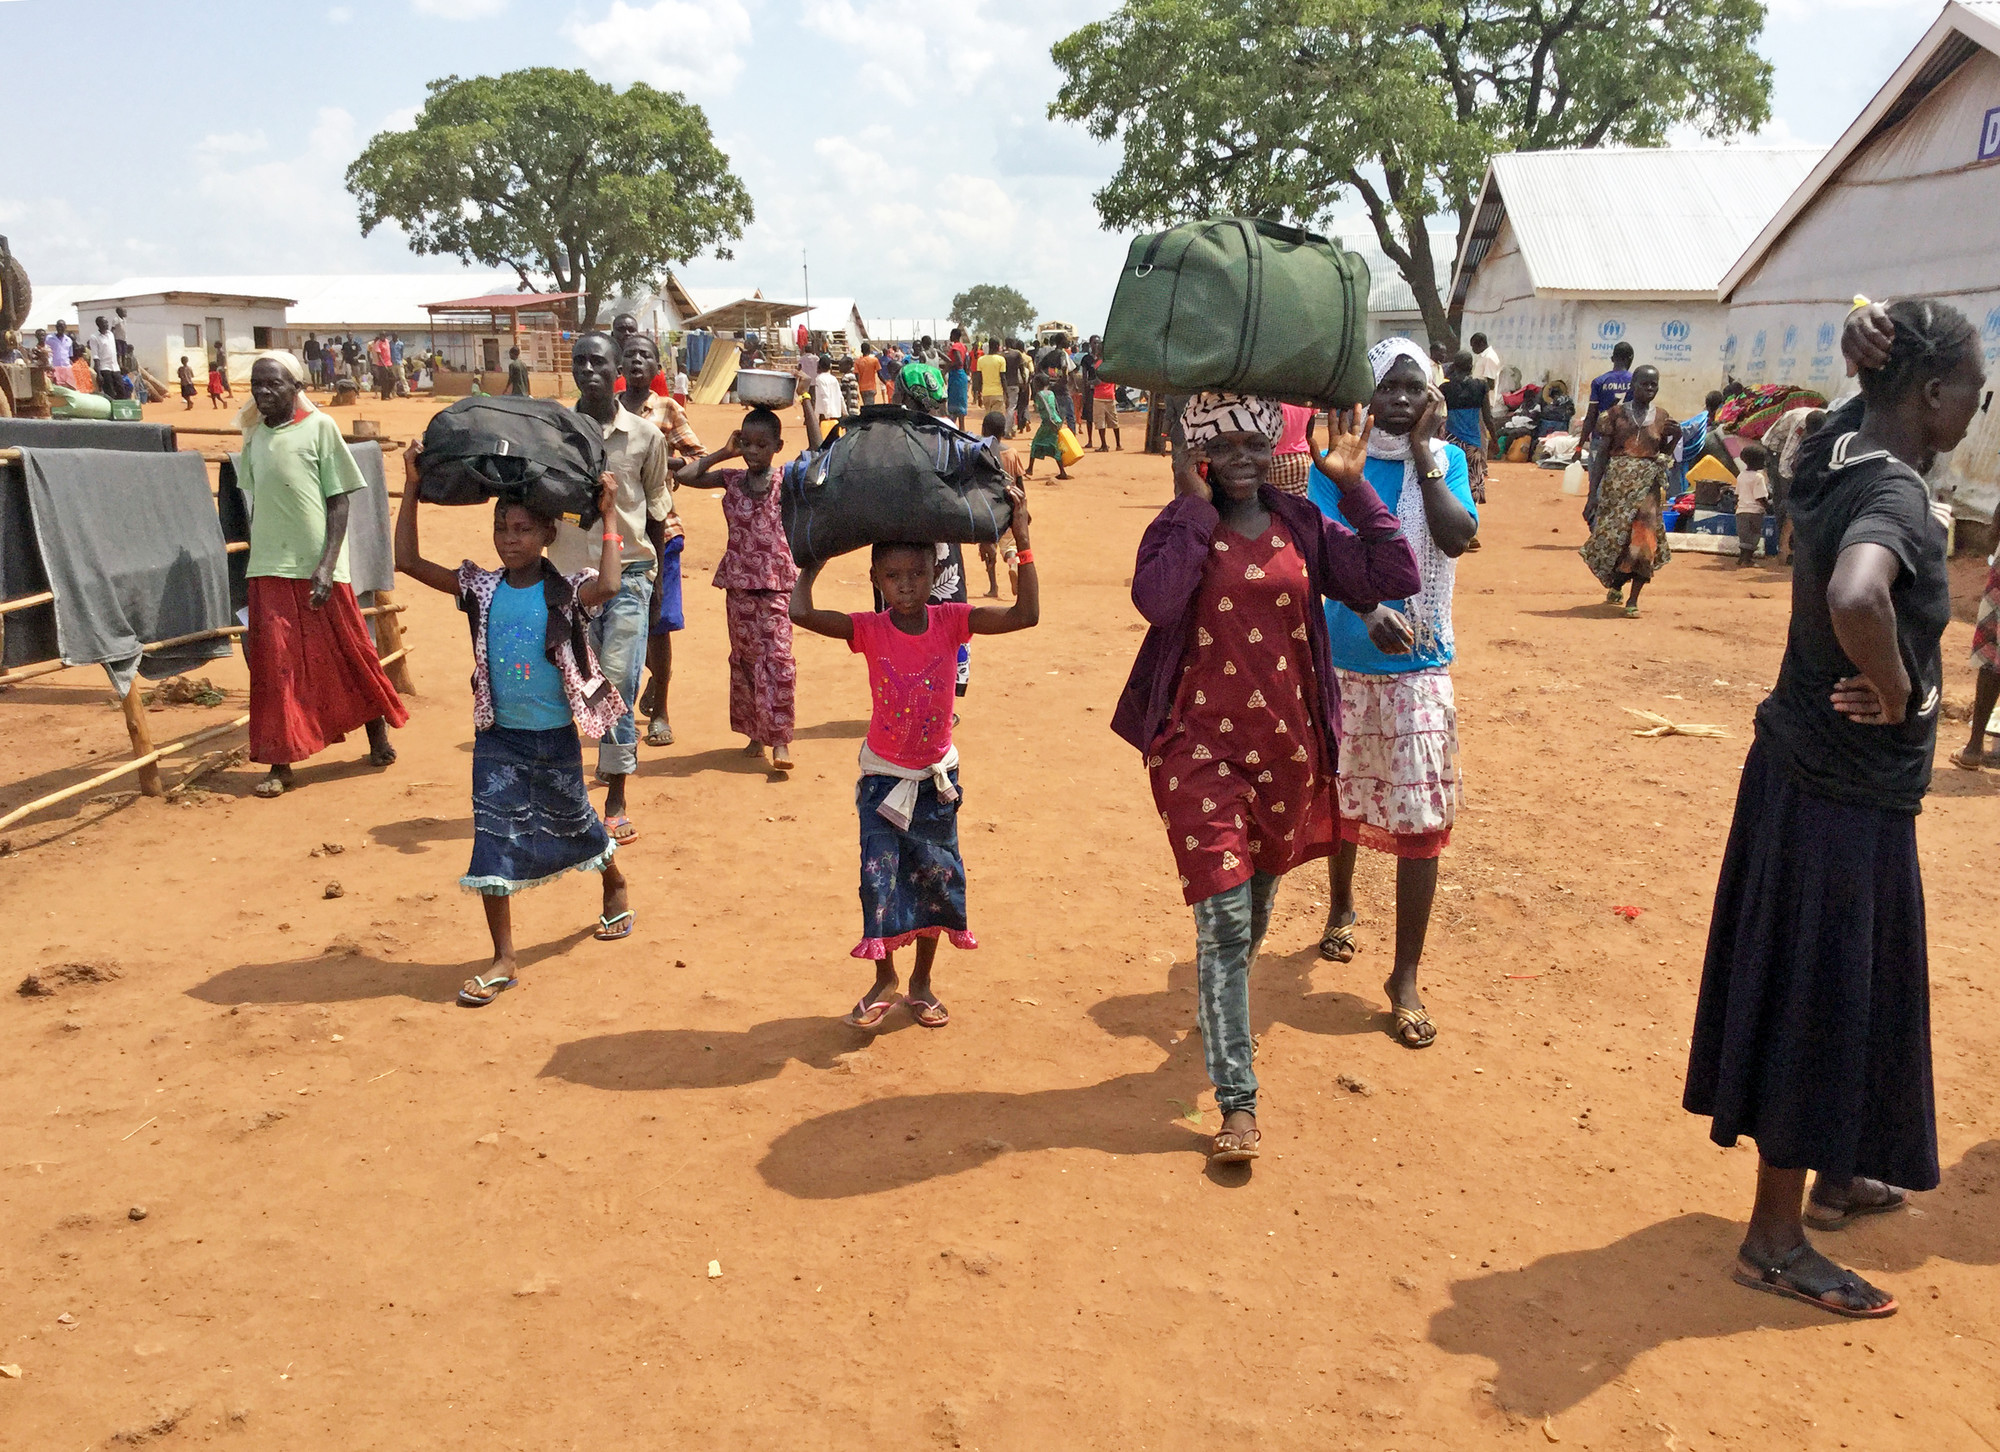 Children arriving at a Uganda refugee camp